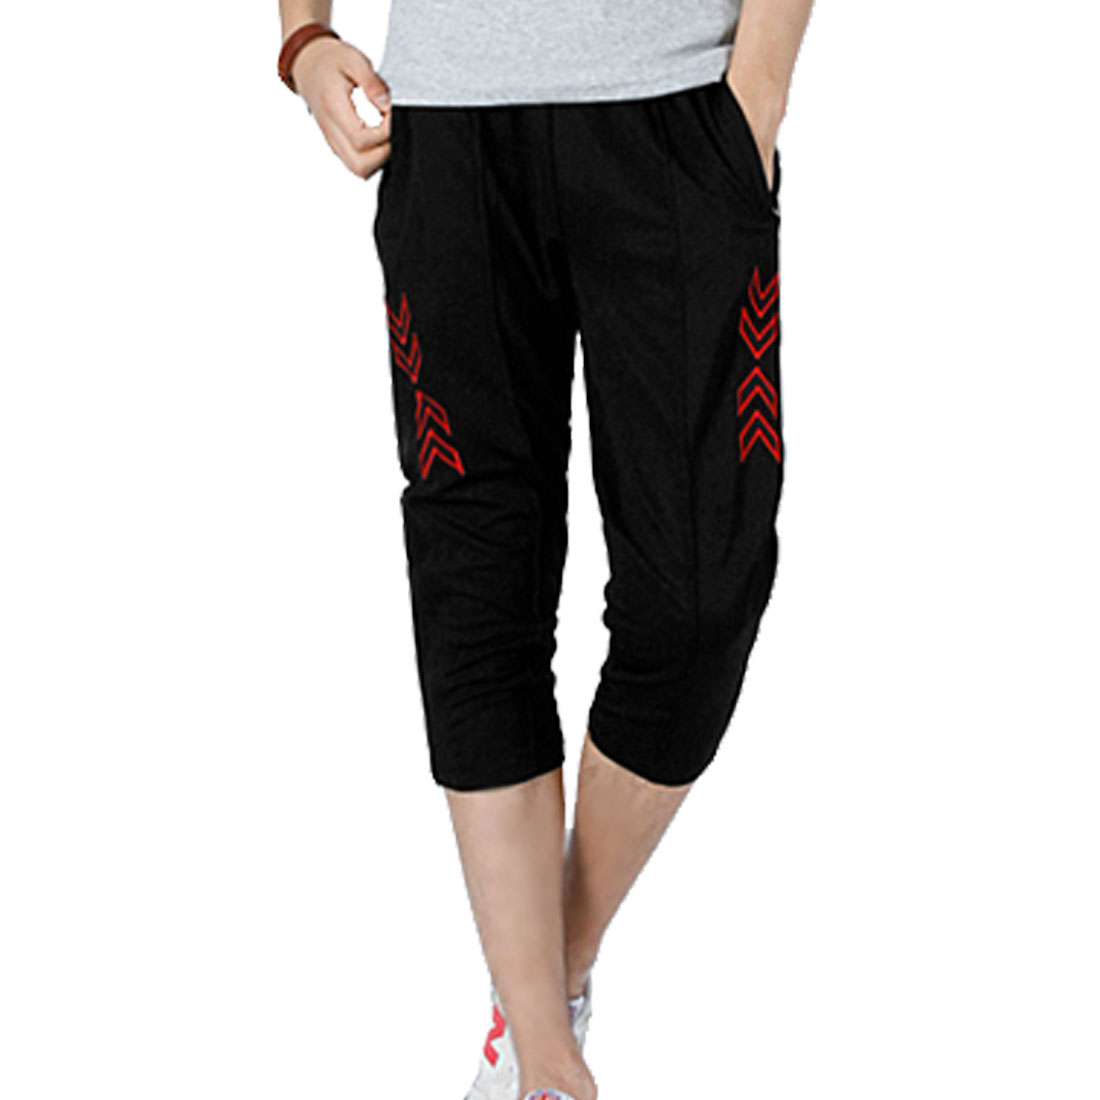 Men Pockets Front Embroidery Decor Capris Pants Red Black W33